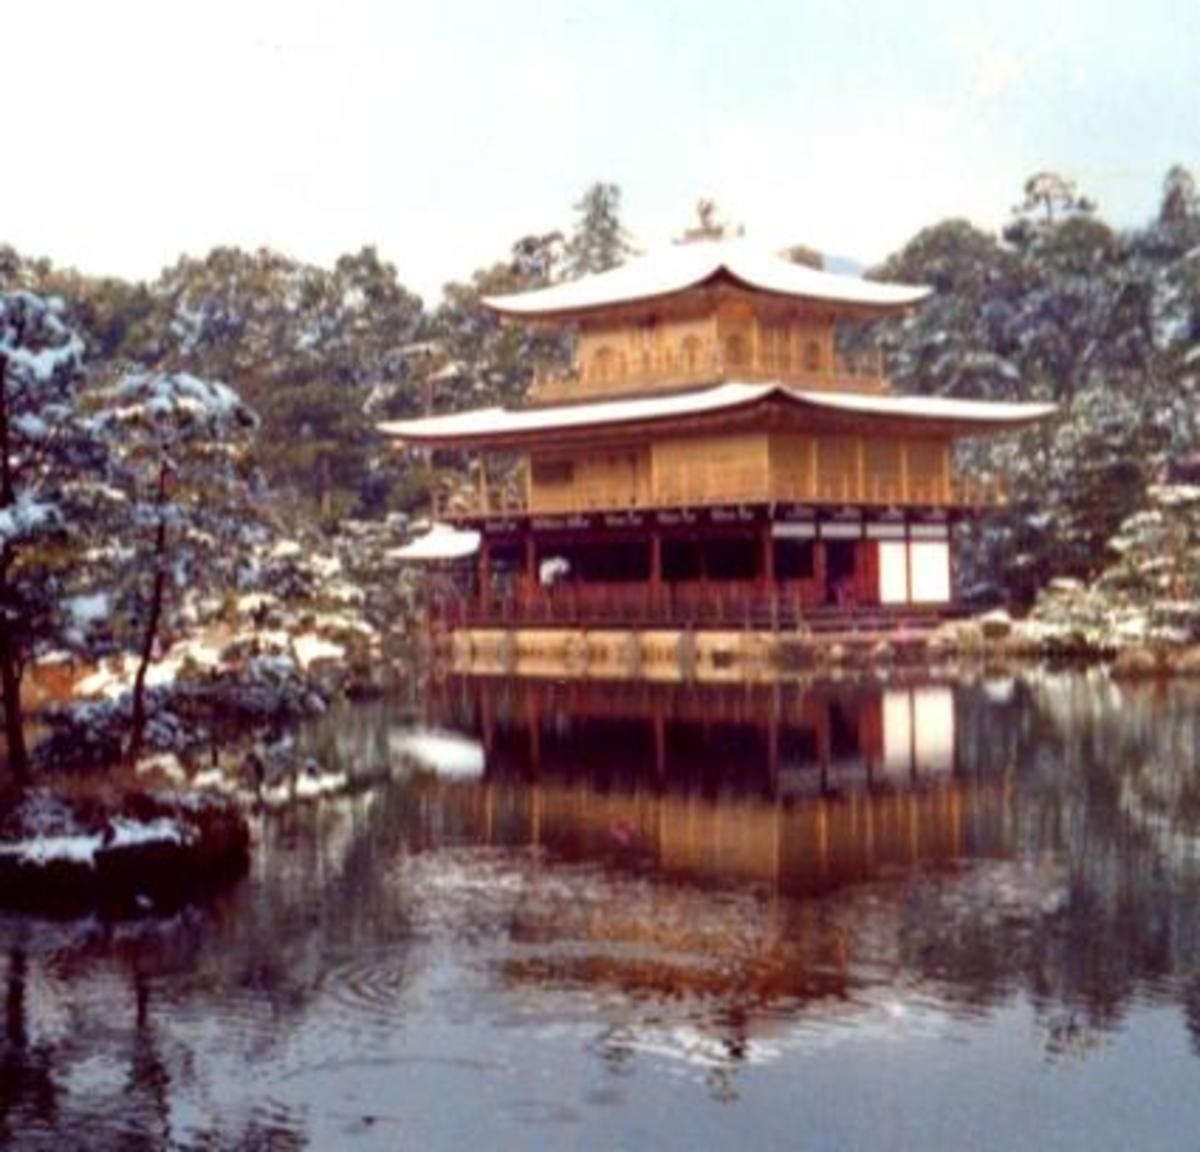 Kinkaku-Ji -- the Golden Temple. In Kyoto, Japan.